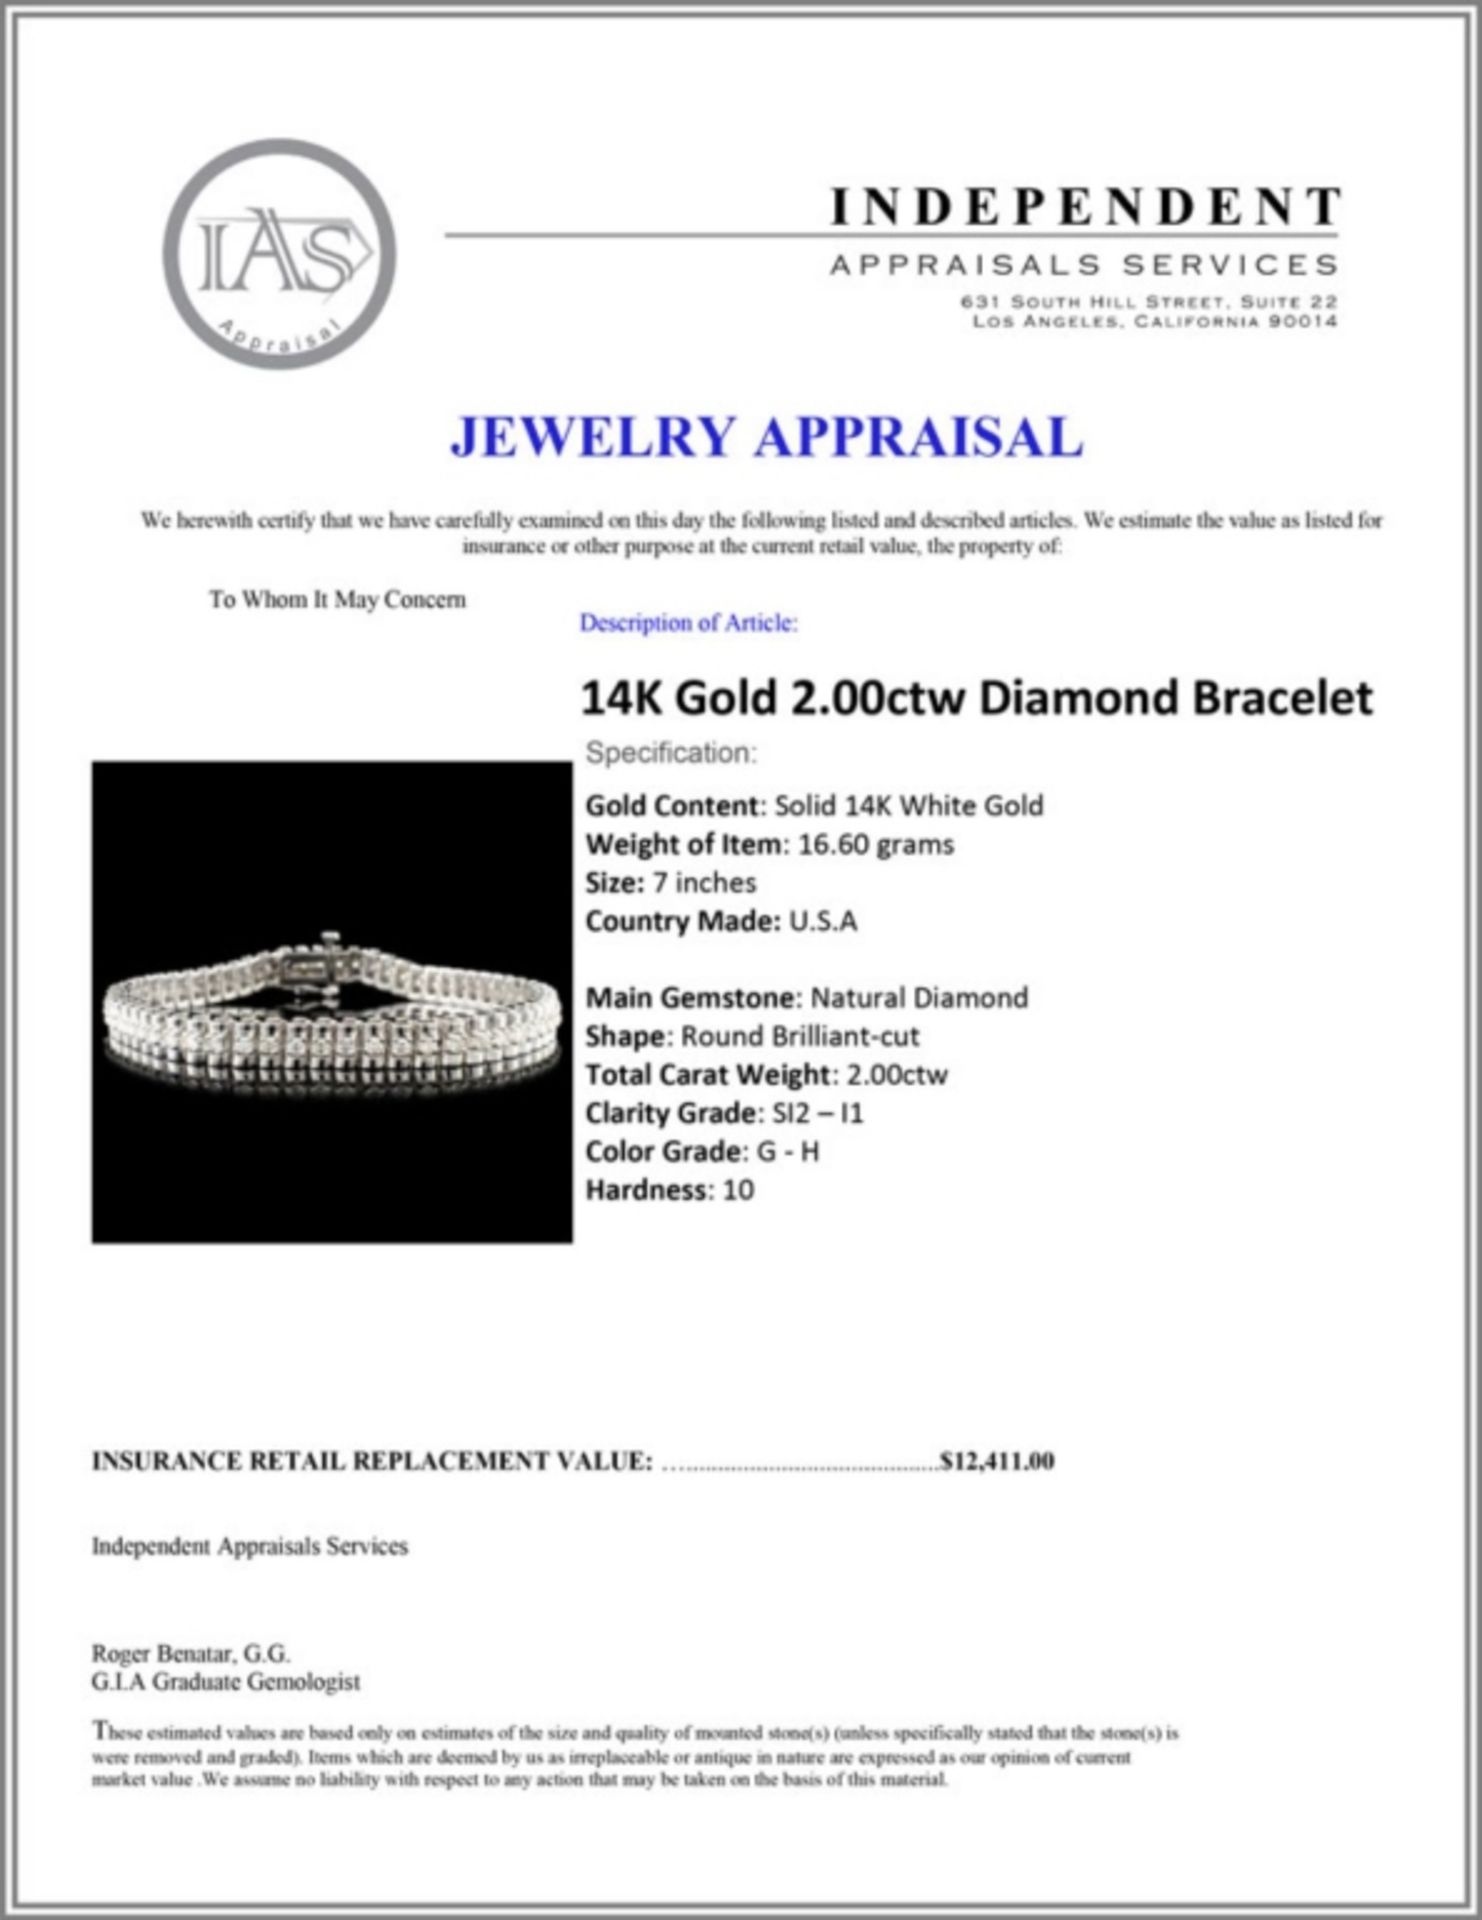 14K Gold 2.00ctw Diamond Bracelet - Image 4 of 4